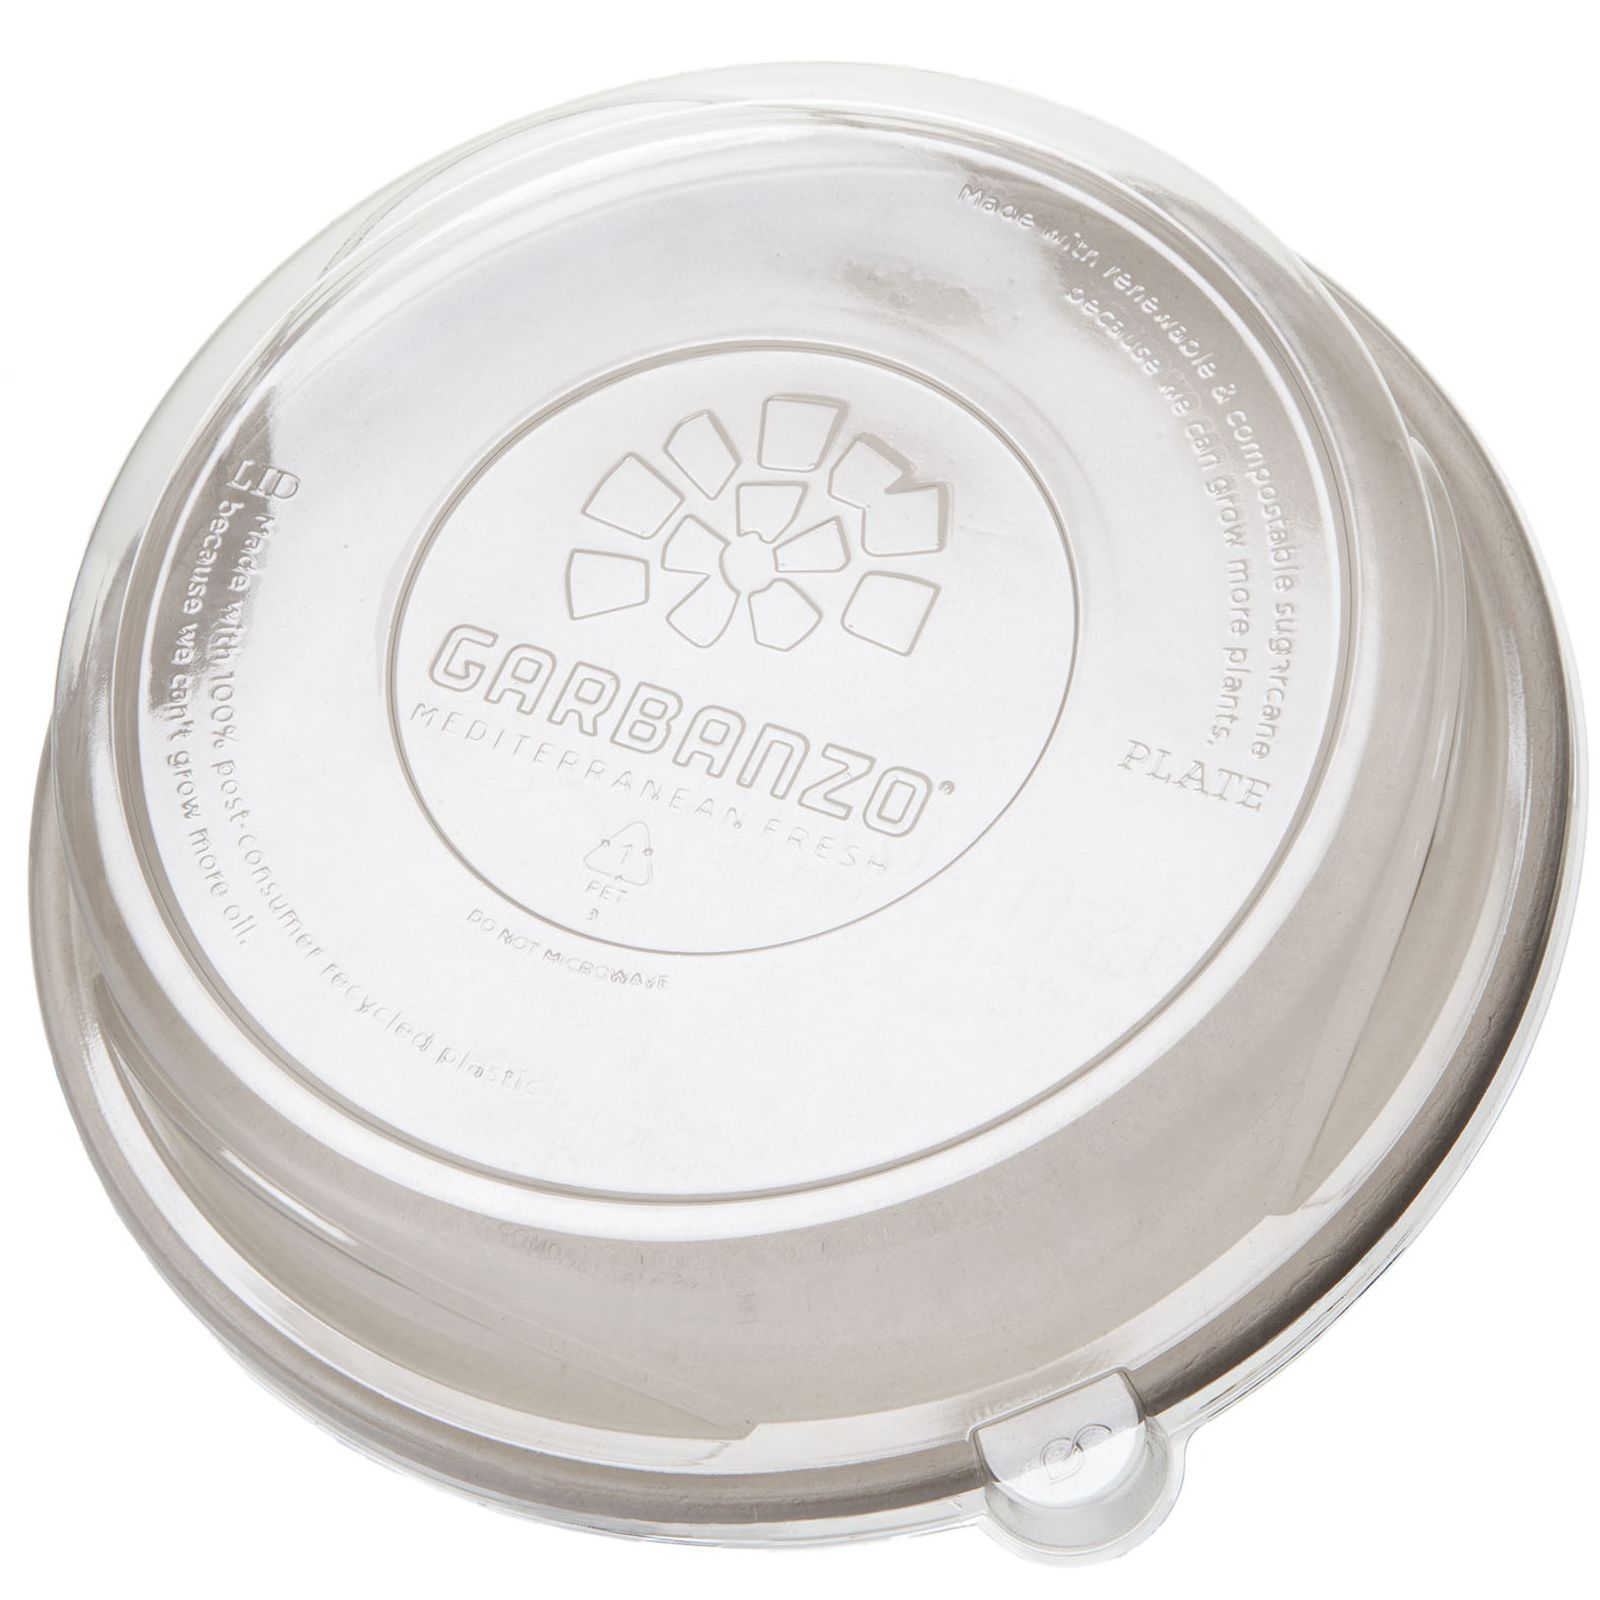 Garbanzo Mediterranean Fresh, Eco-Products Team Up to Offer Dinnerware That's Good for Guests and the Planet